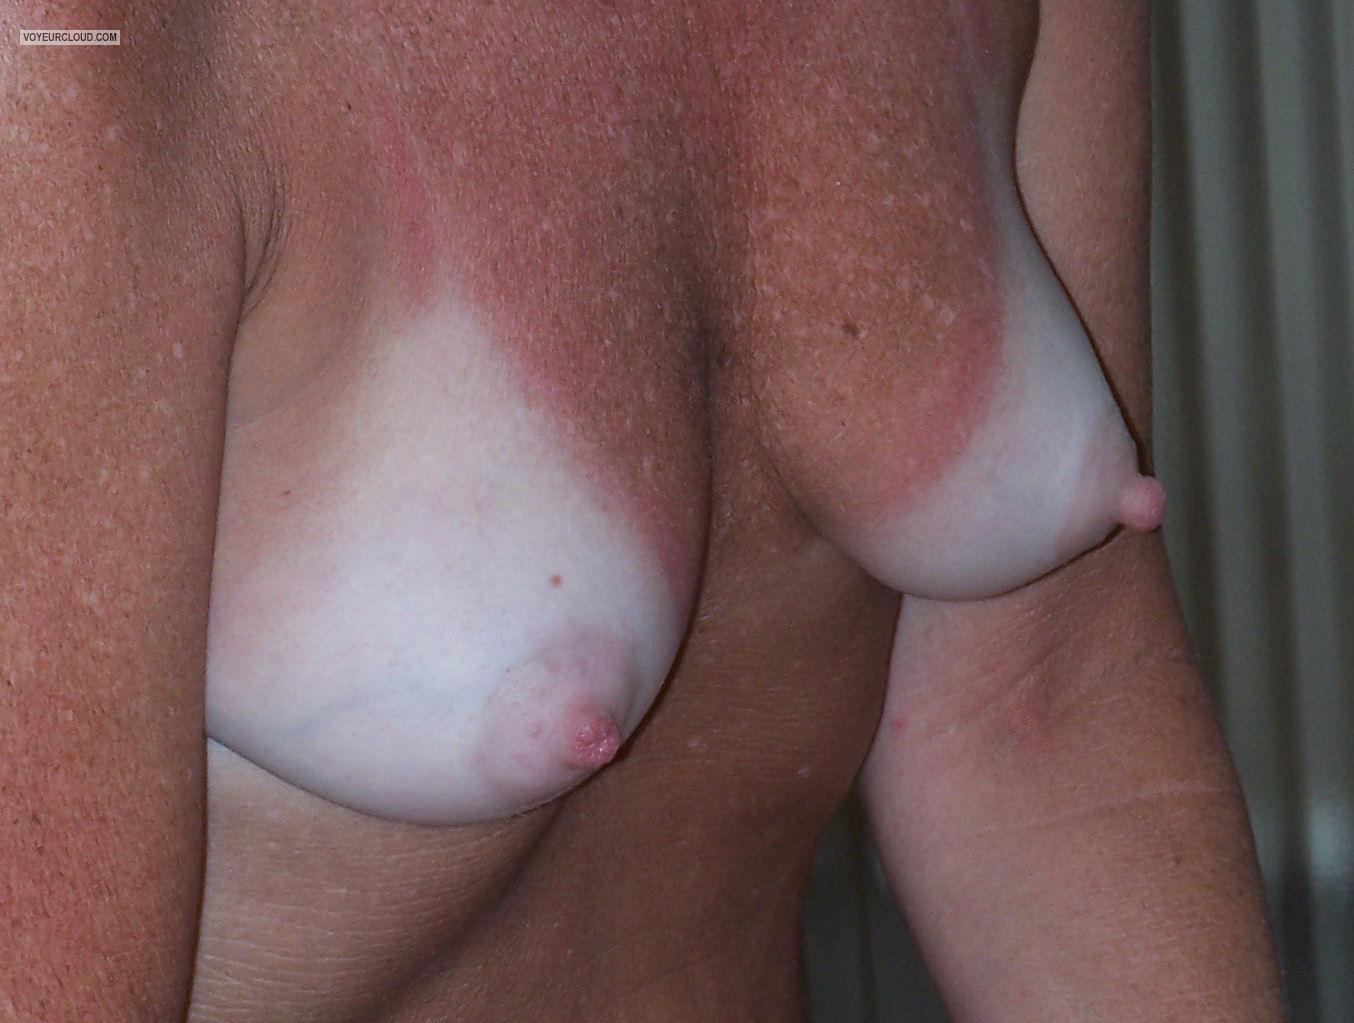 Tit Flash: My Small Tits With Very Strong Tanlines - Mitzi from United States